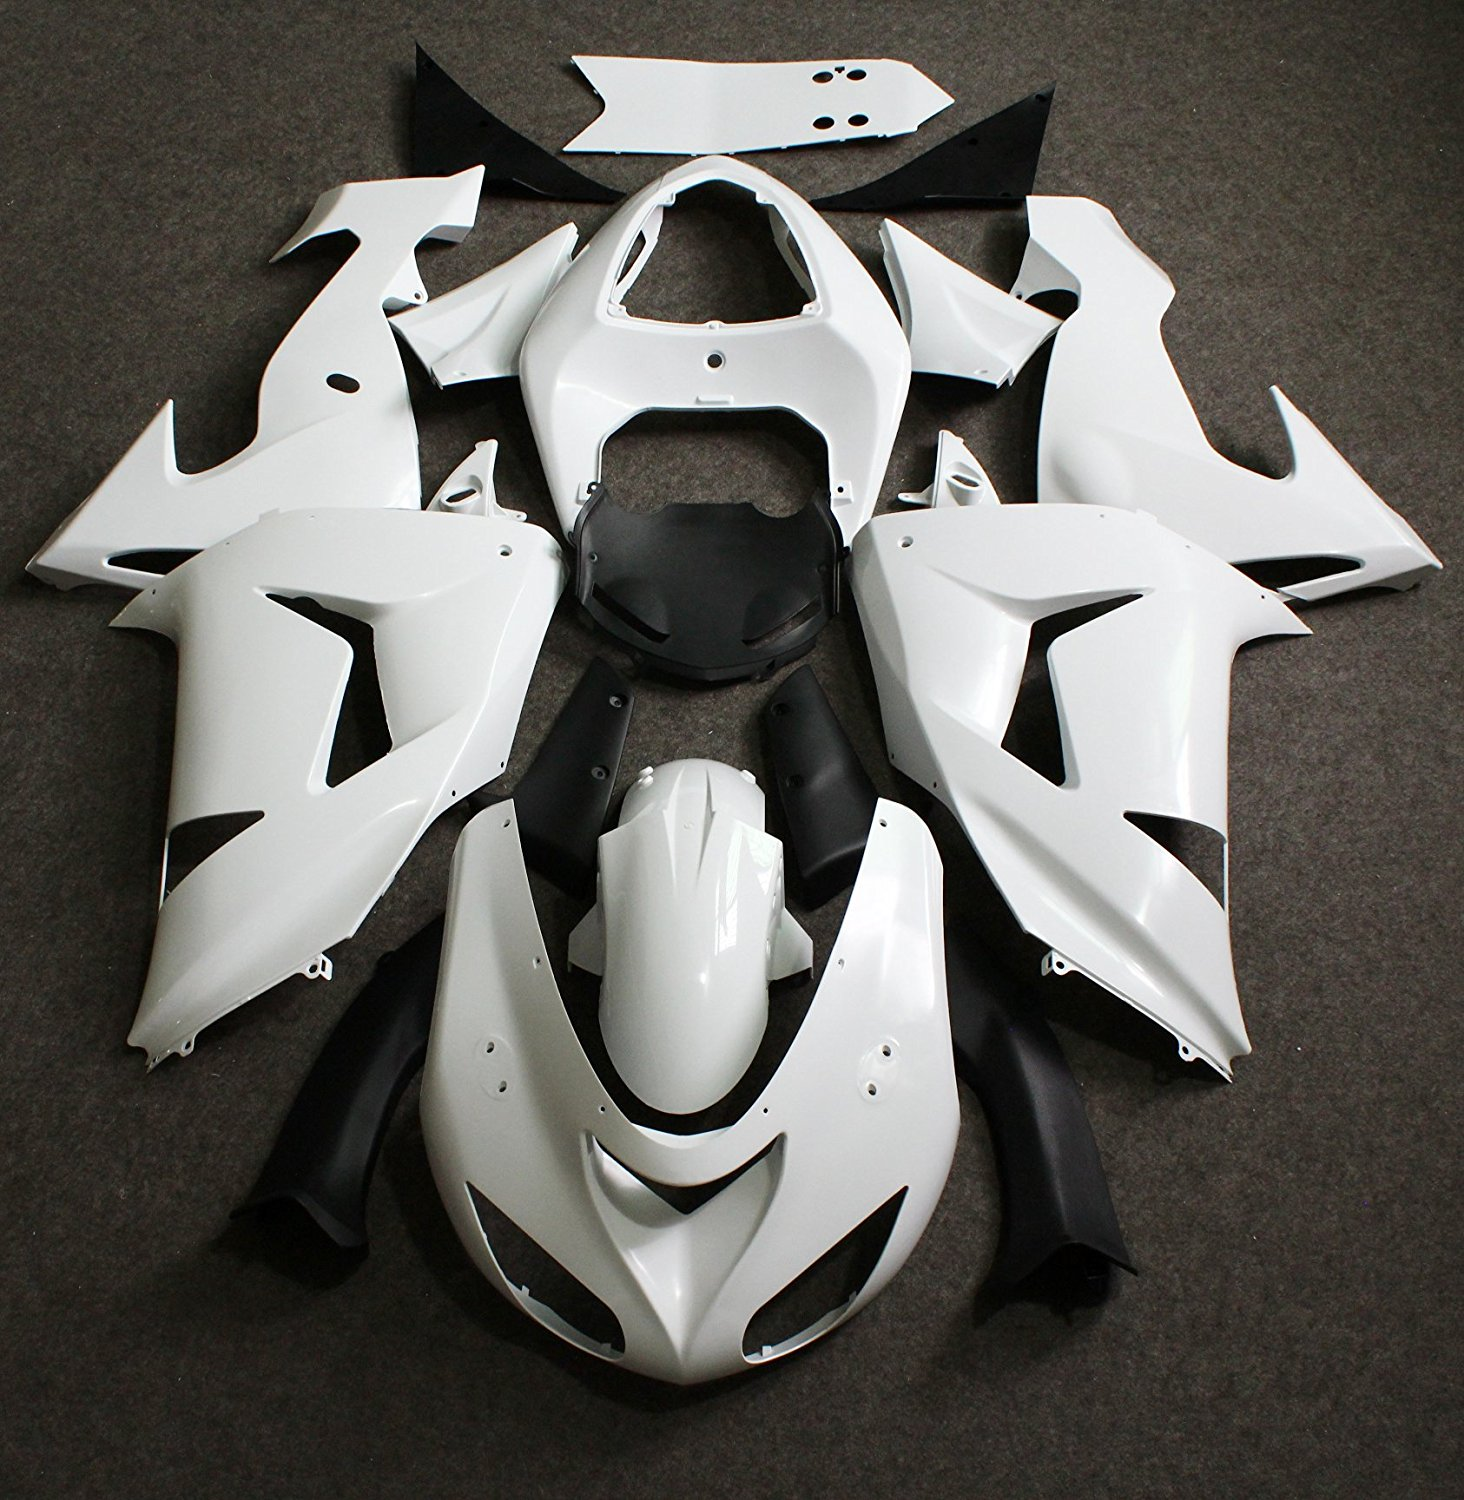 Motorcycle Unpainted Fairing Kit For Kawasaki Ninja ZX-10R ZX10R 2006 - 2007 ZX 10R 06 07 Bodywork Fairings Injection Molding isabel marant сапоги